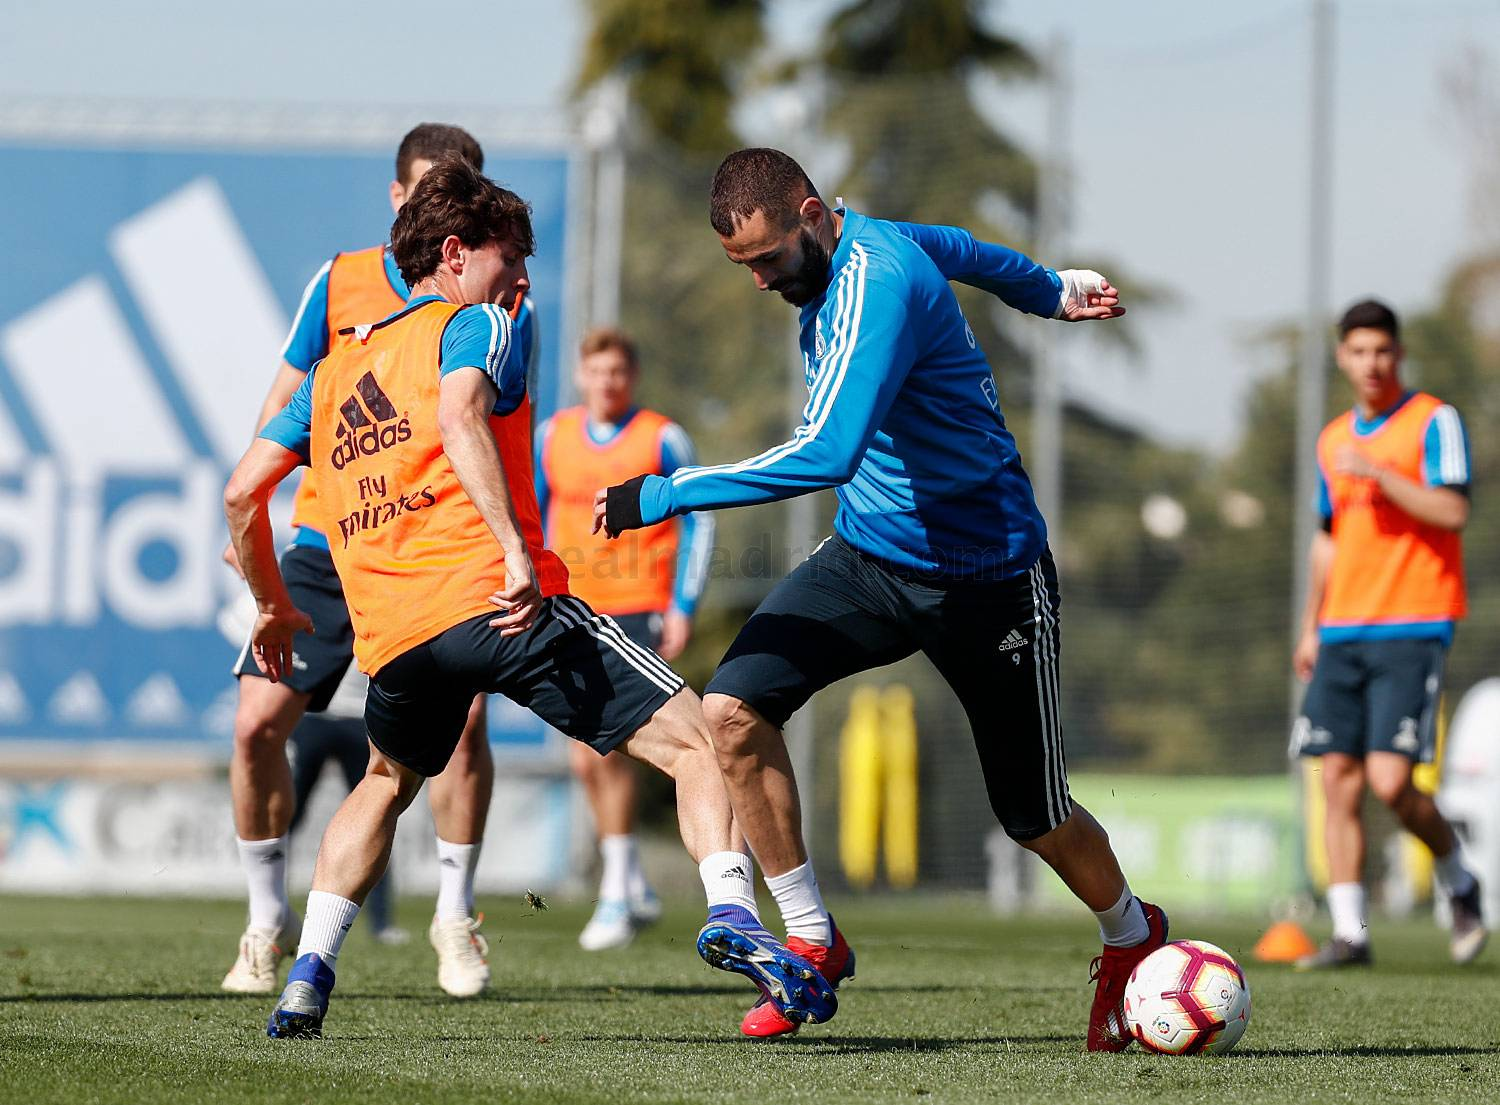 Real Madrid - Entrenamiento del Real Madrid - 09-03-2019